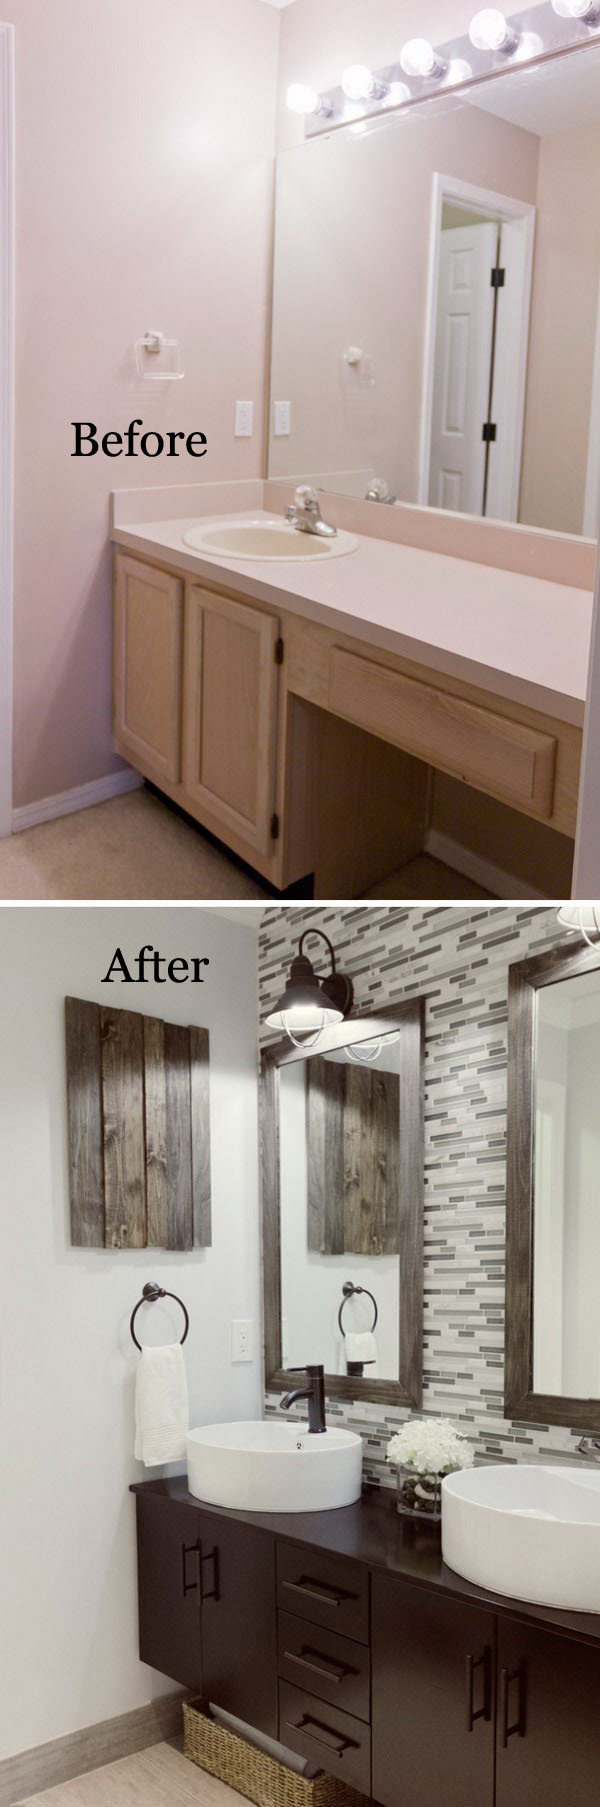 Before and after 20 awesome bathroom makeovers hative for Master bath renovation